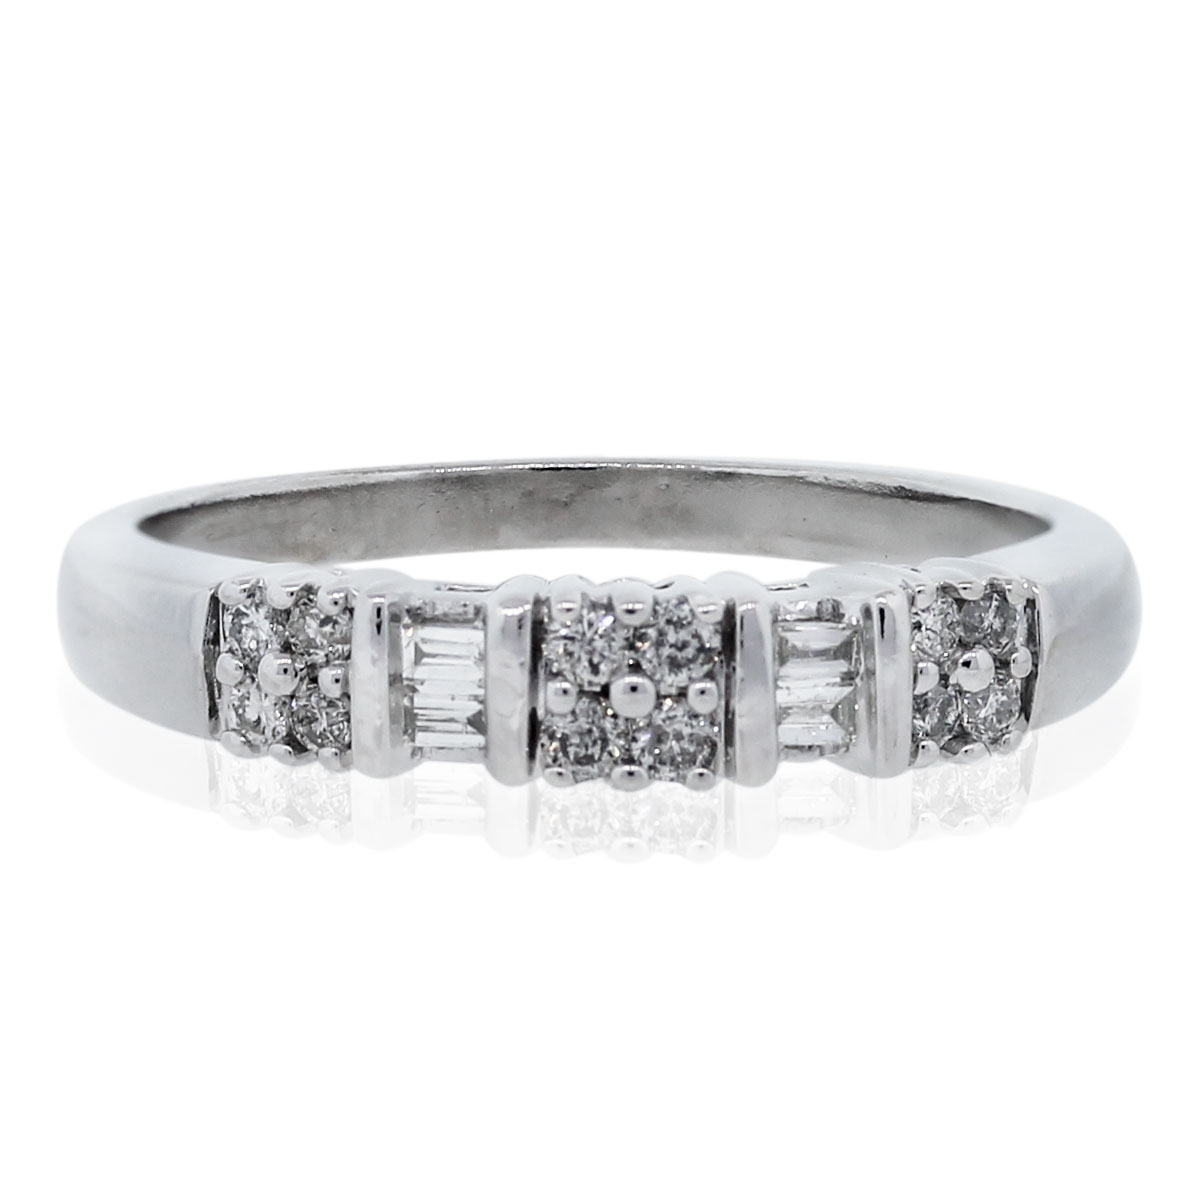 10kt White Gold Round Brilliant & Baguette Diamond Ring